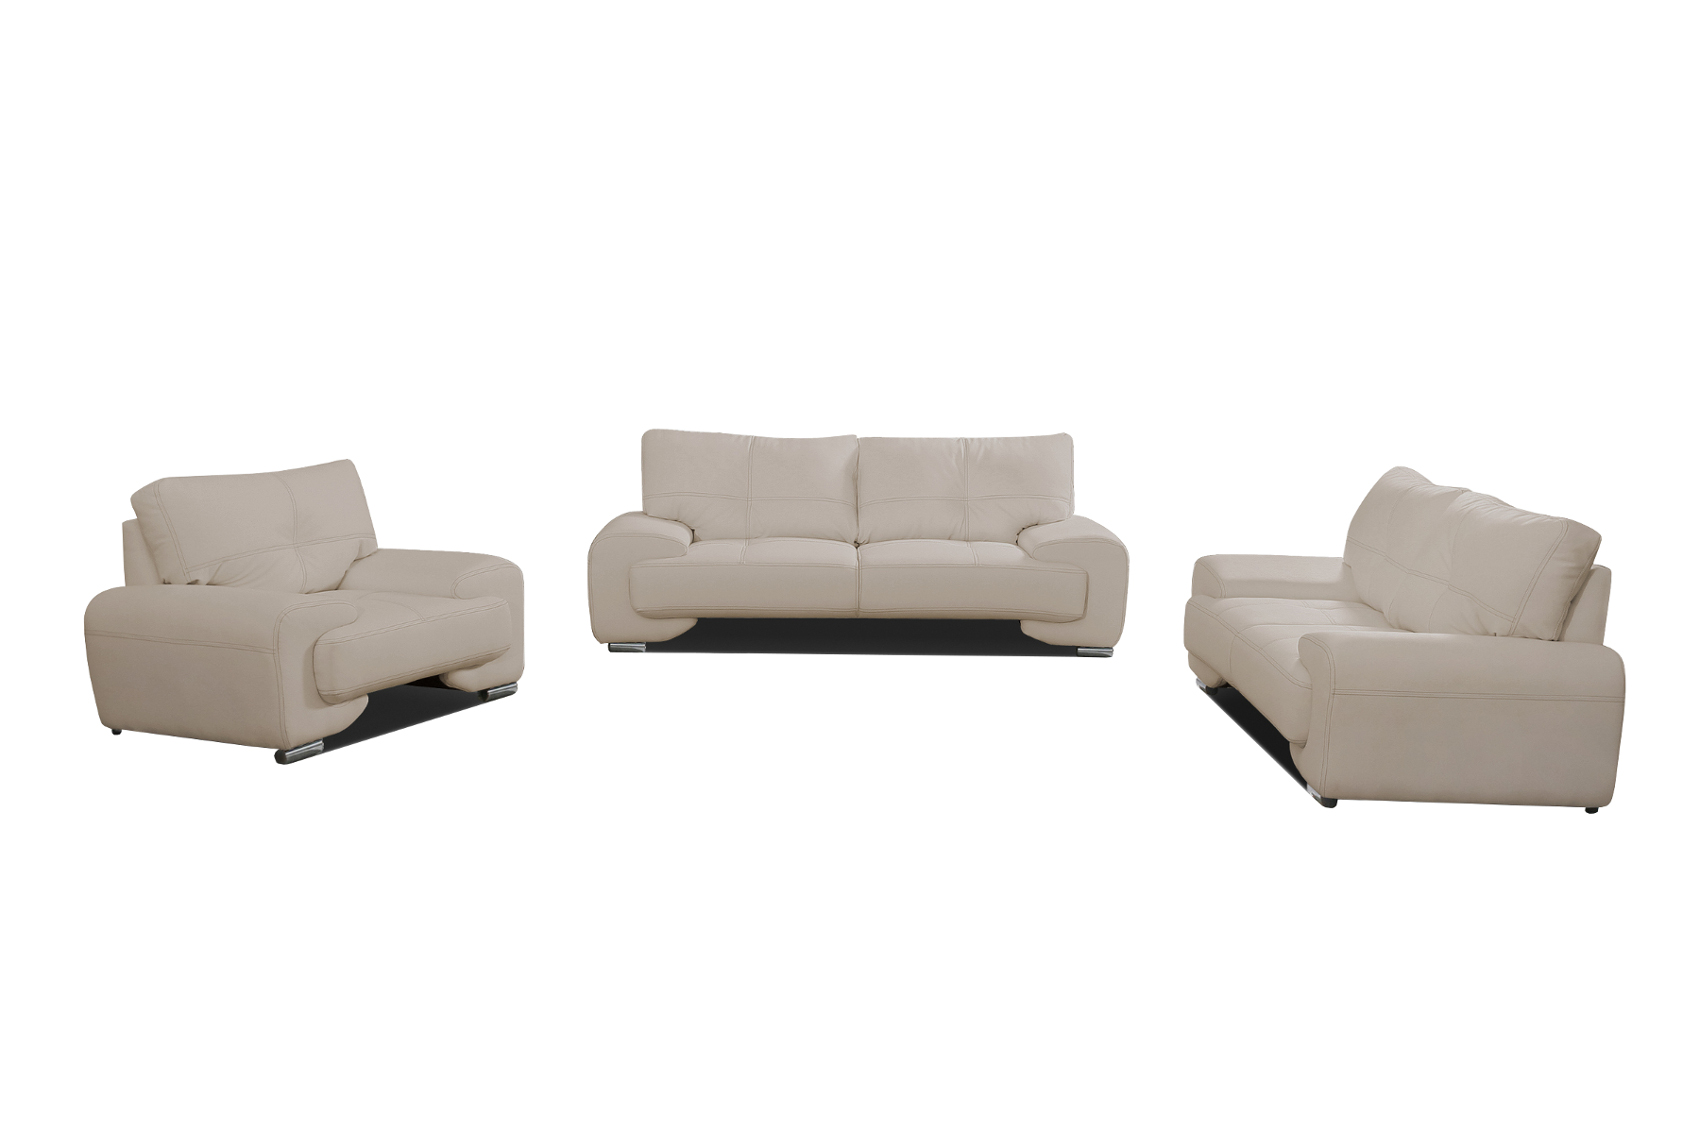 sofa set sofagarnitur couch 3er 2er sessel 3 2 1 kunstleder braun florida lux ebay. Black Bedroom Furniture Sets. Home Design Ideas